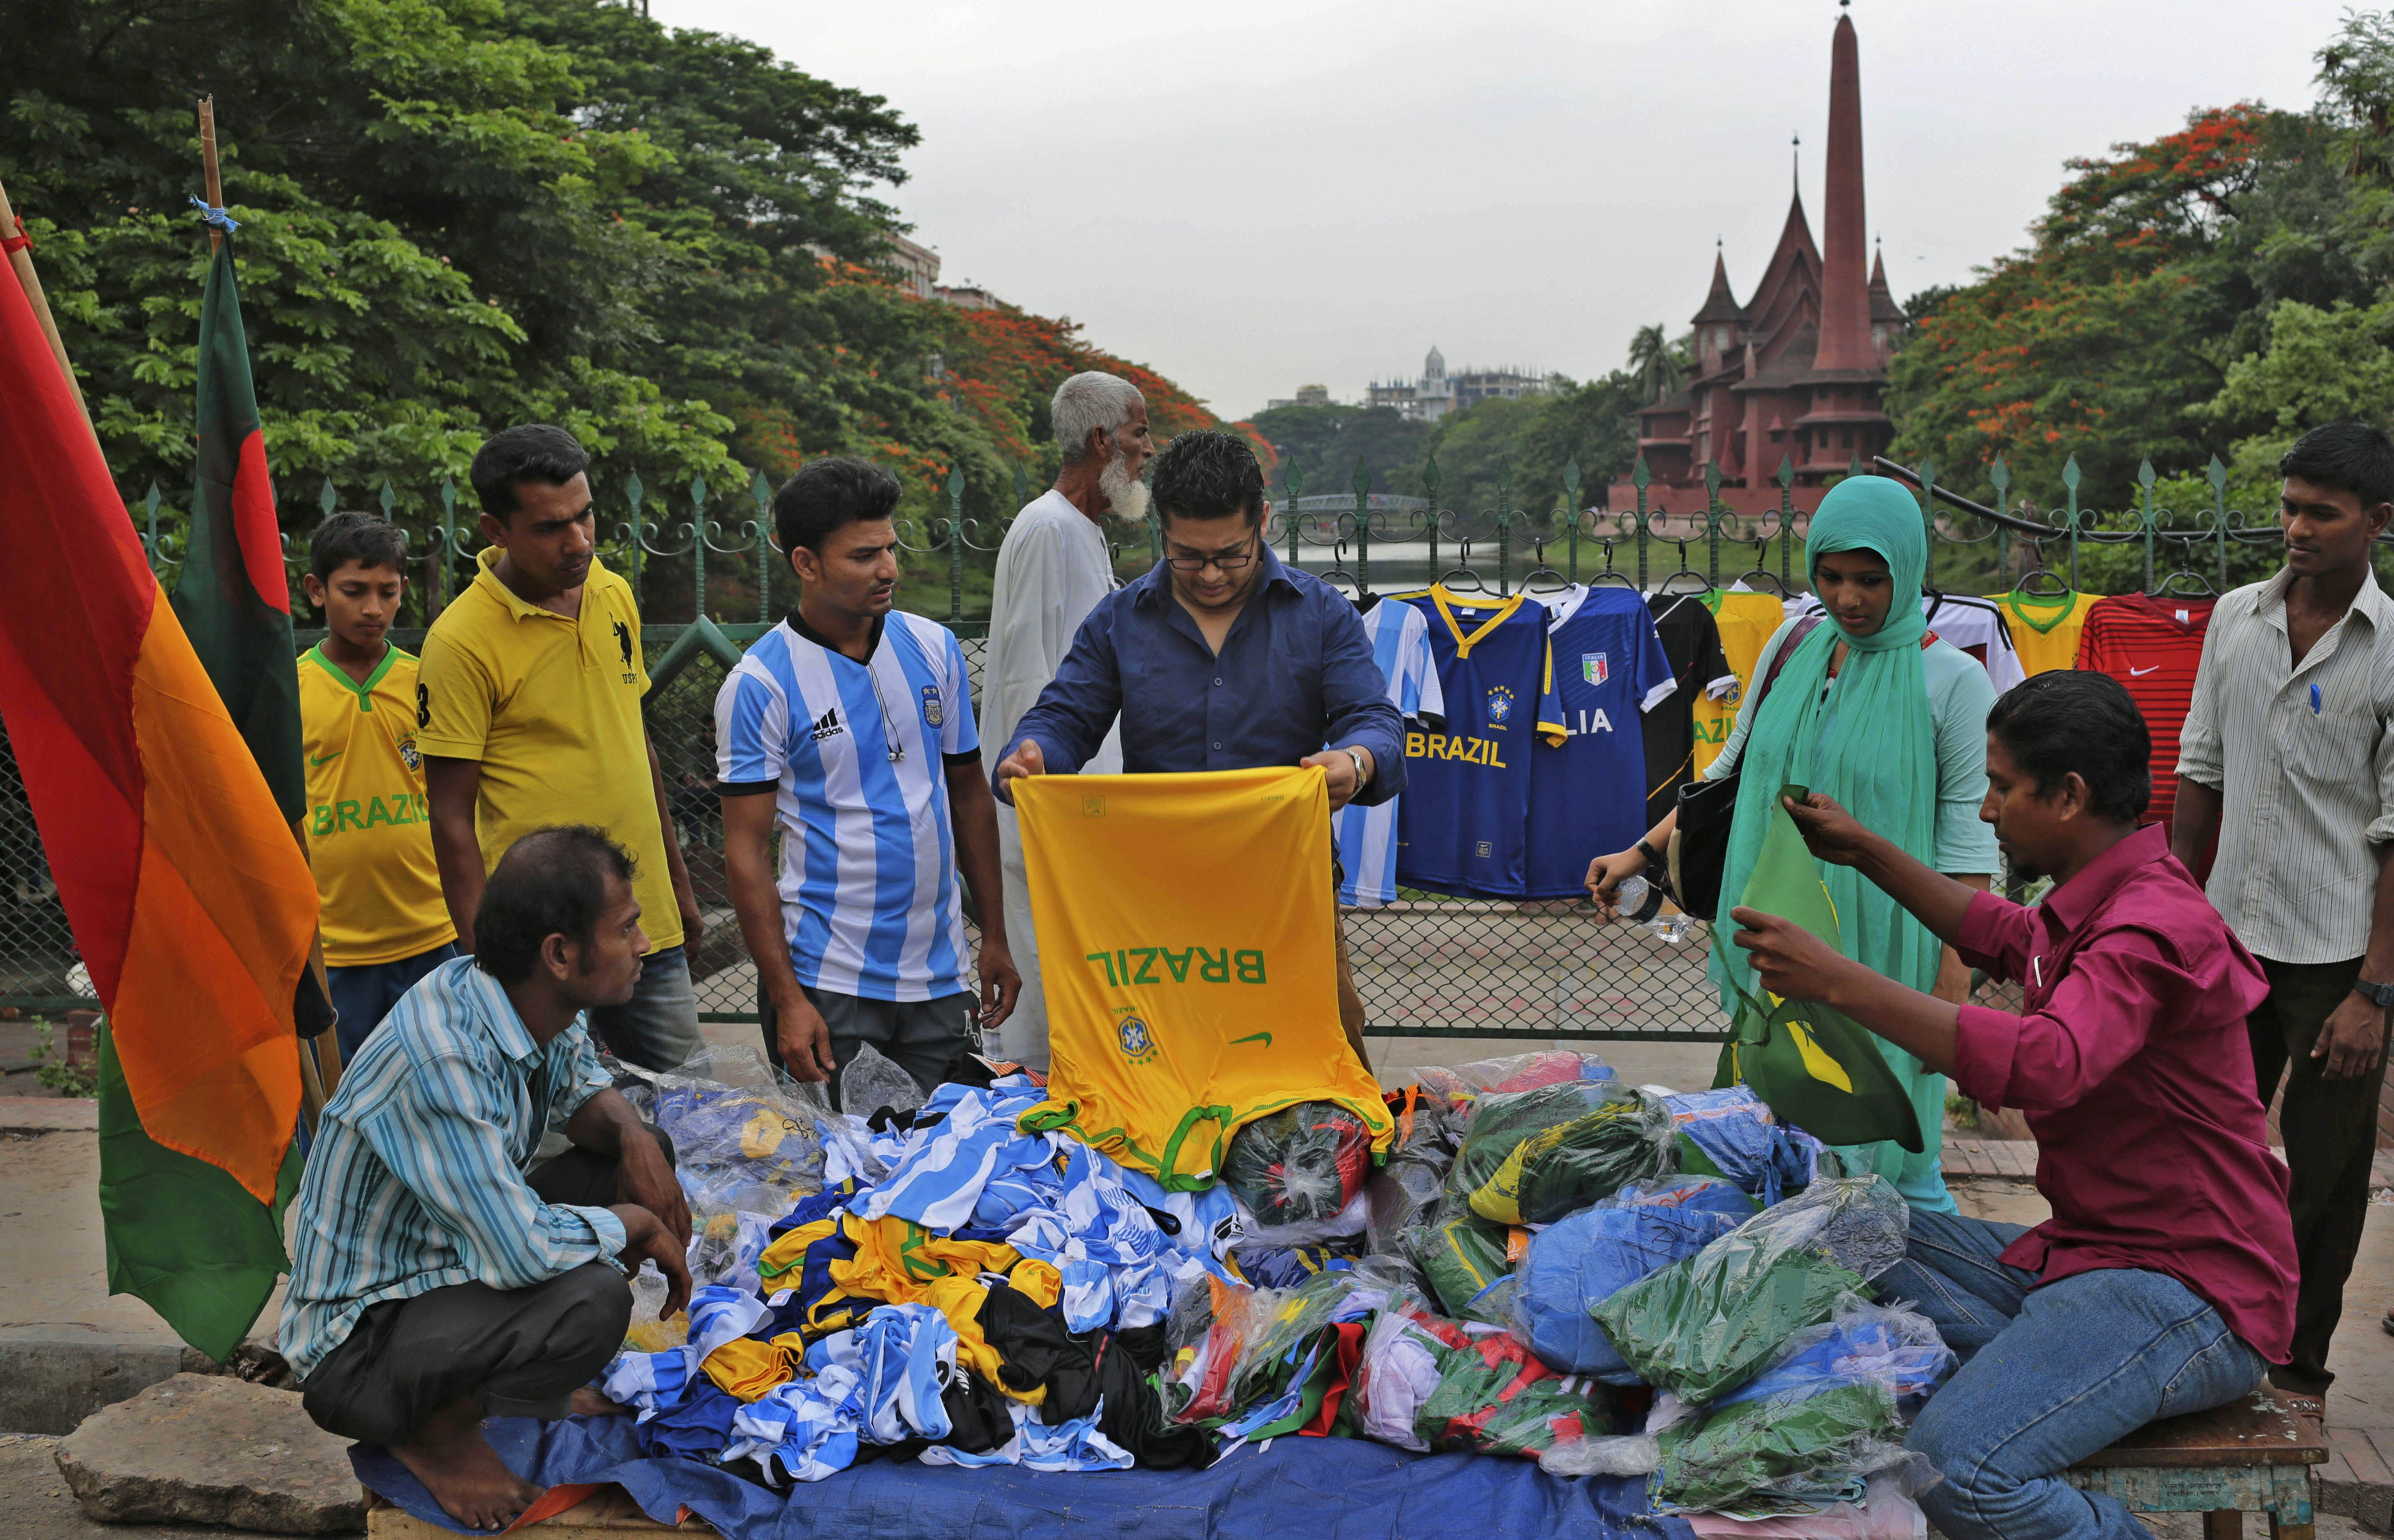 A man examines a T-shirt in the style of Brazil's national soccer team, being offered by a street vendor in Dhaka, Bangladesh, on June 1, 2014